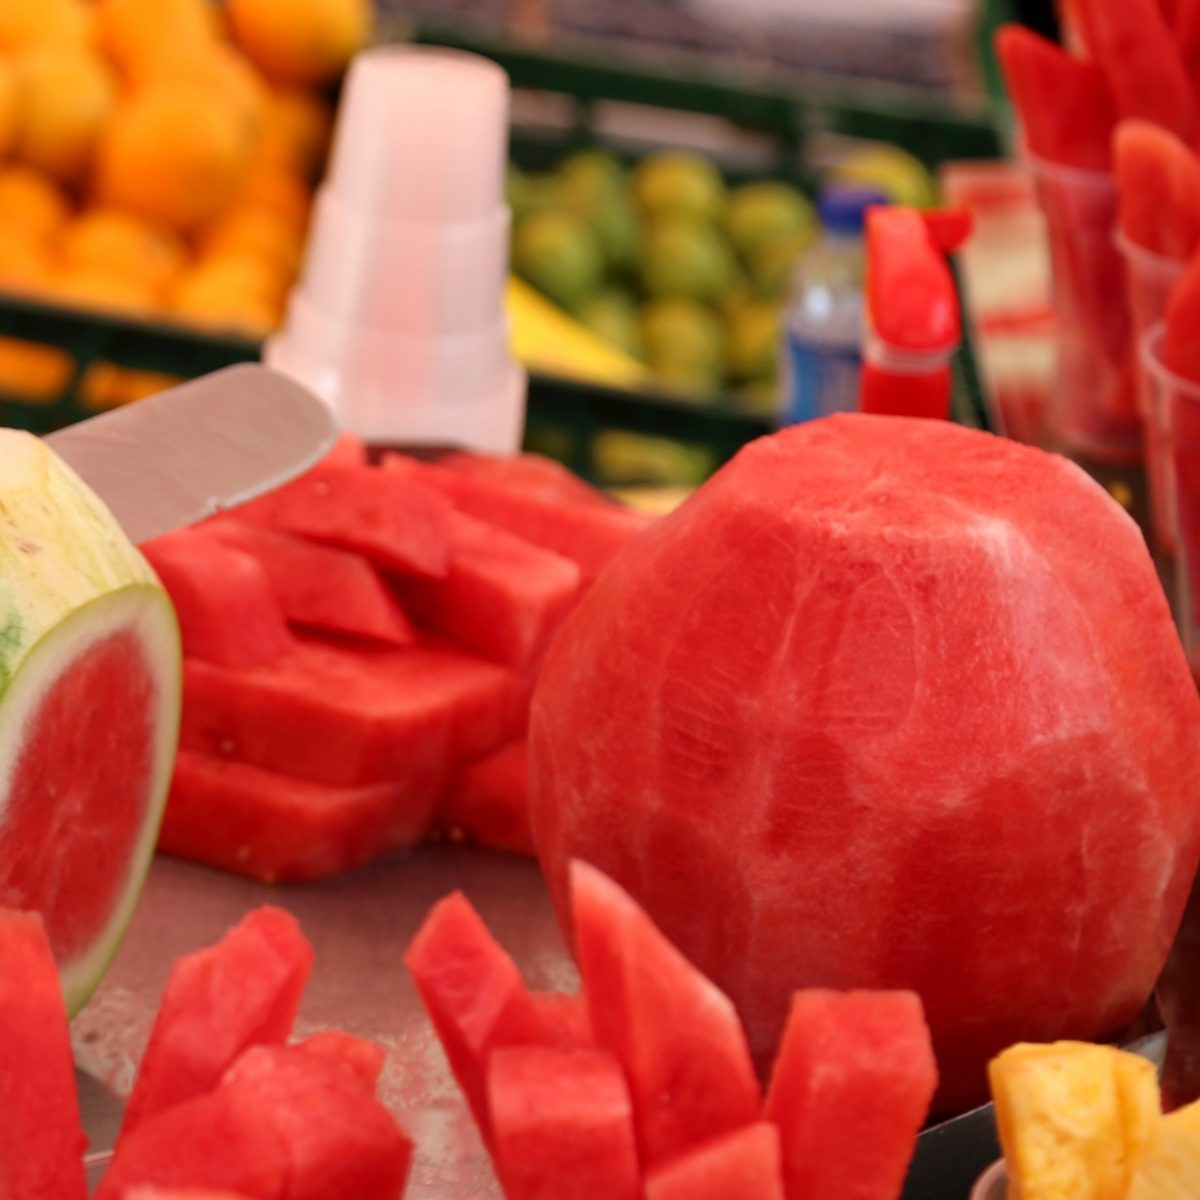 Man cuts the watermelon with a knife to prepare the fruit salad for sale